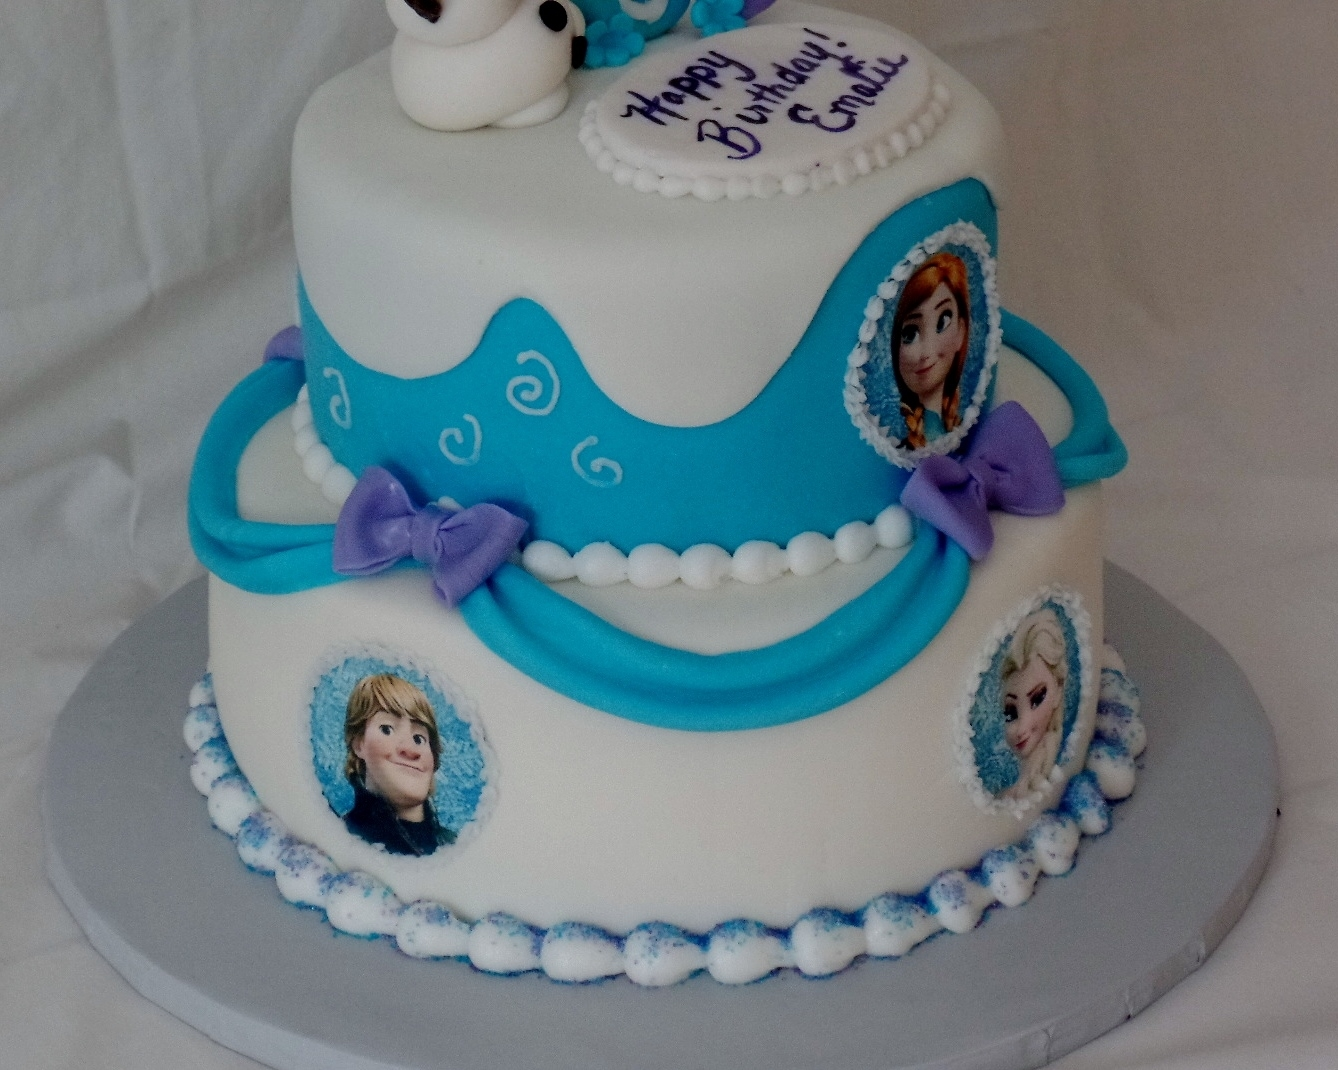 Superb Frozen Themed Birthday Cake Cakecentral Com Personalised Birthday Cards Paralily Jamesorg